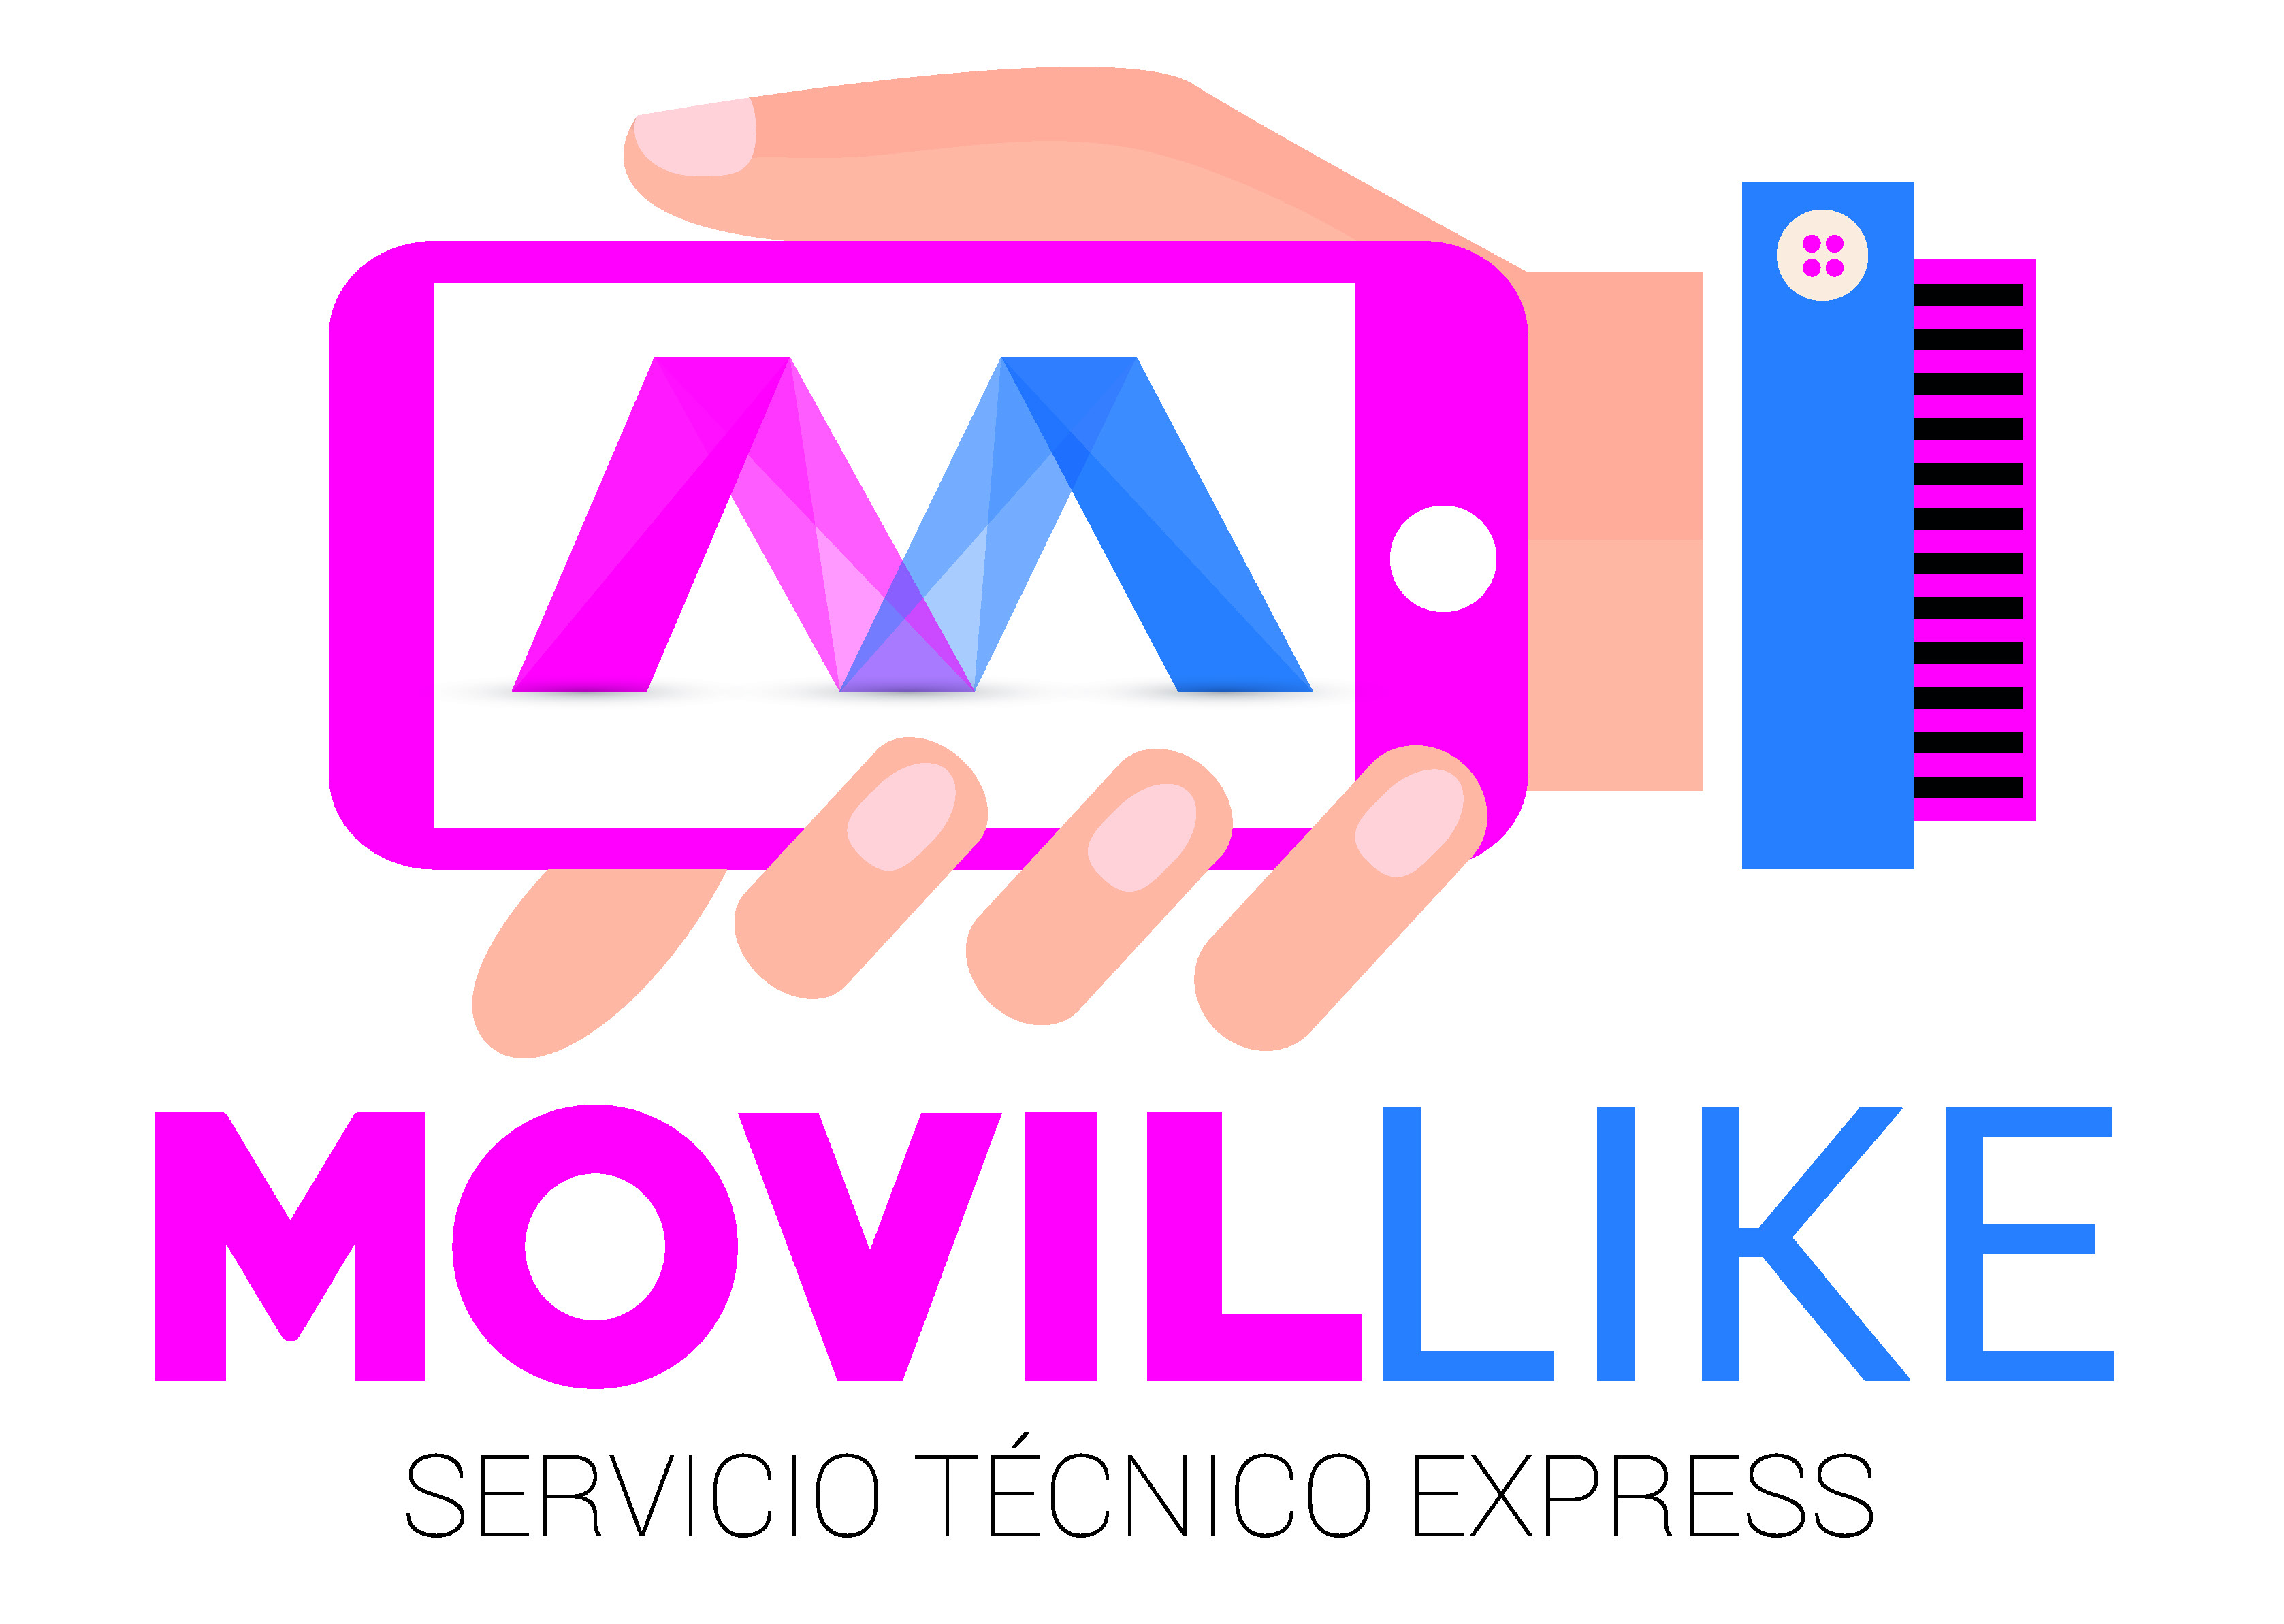 MOVIL LIKE SERVICIO TECNICO EXPRESS